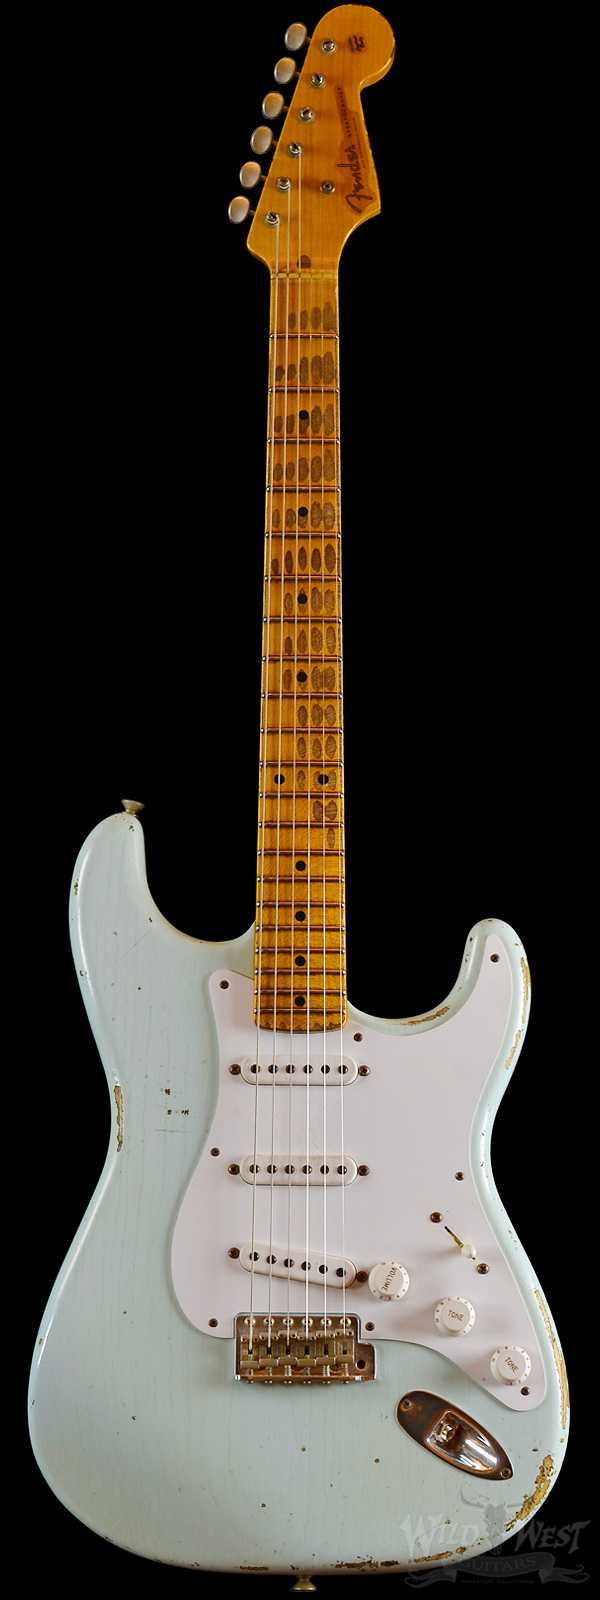 Fender 1954 Limited Edition Heavy Relic One-Piece Ash Body Stratocaster Sonic Blue